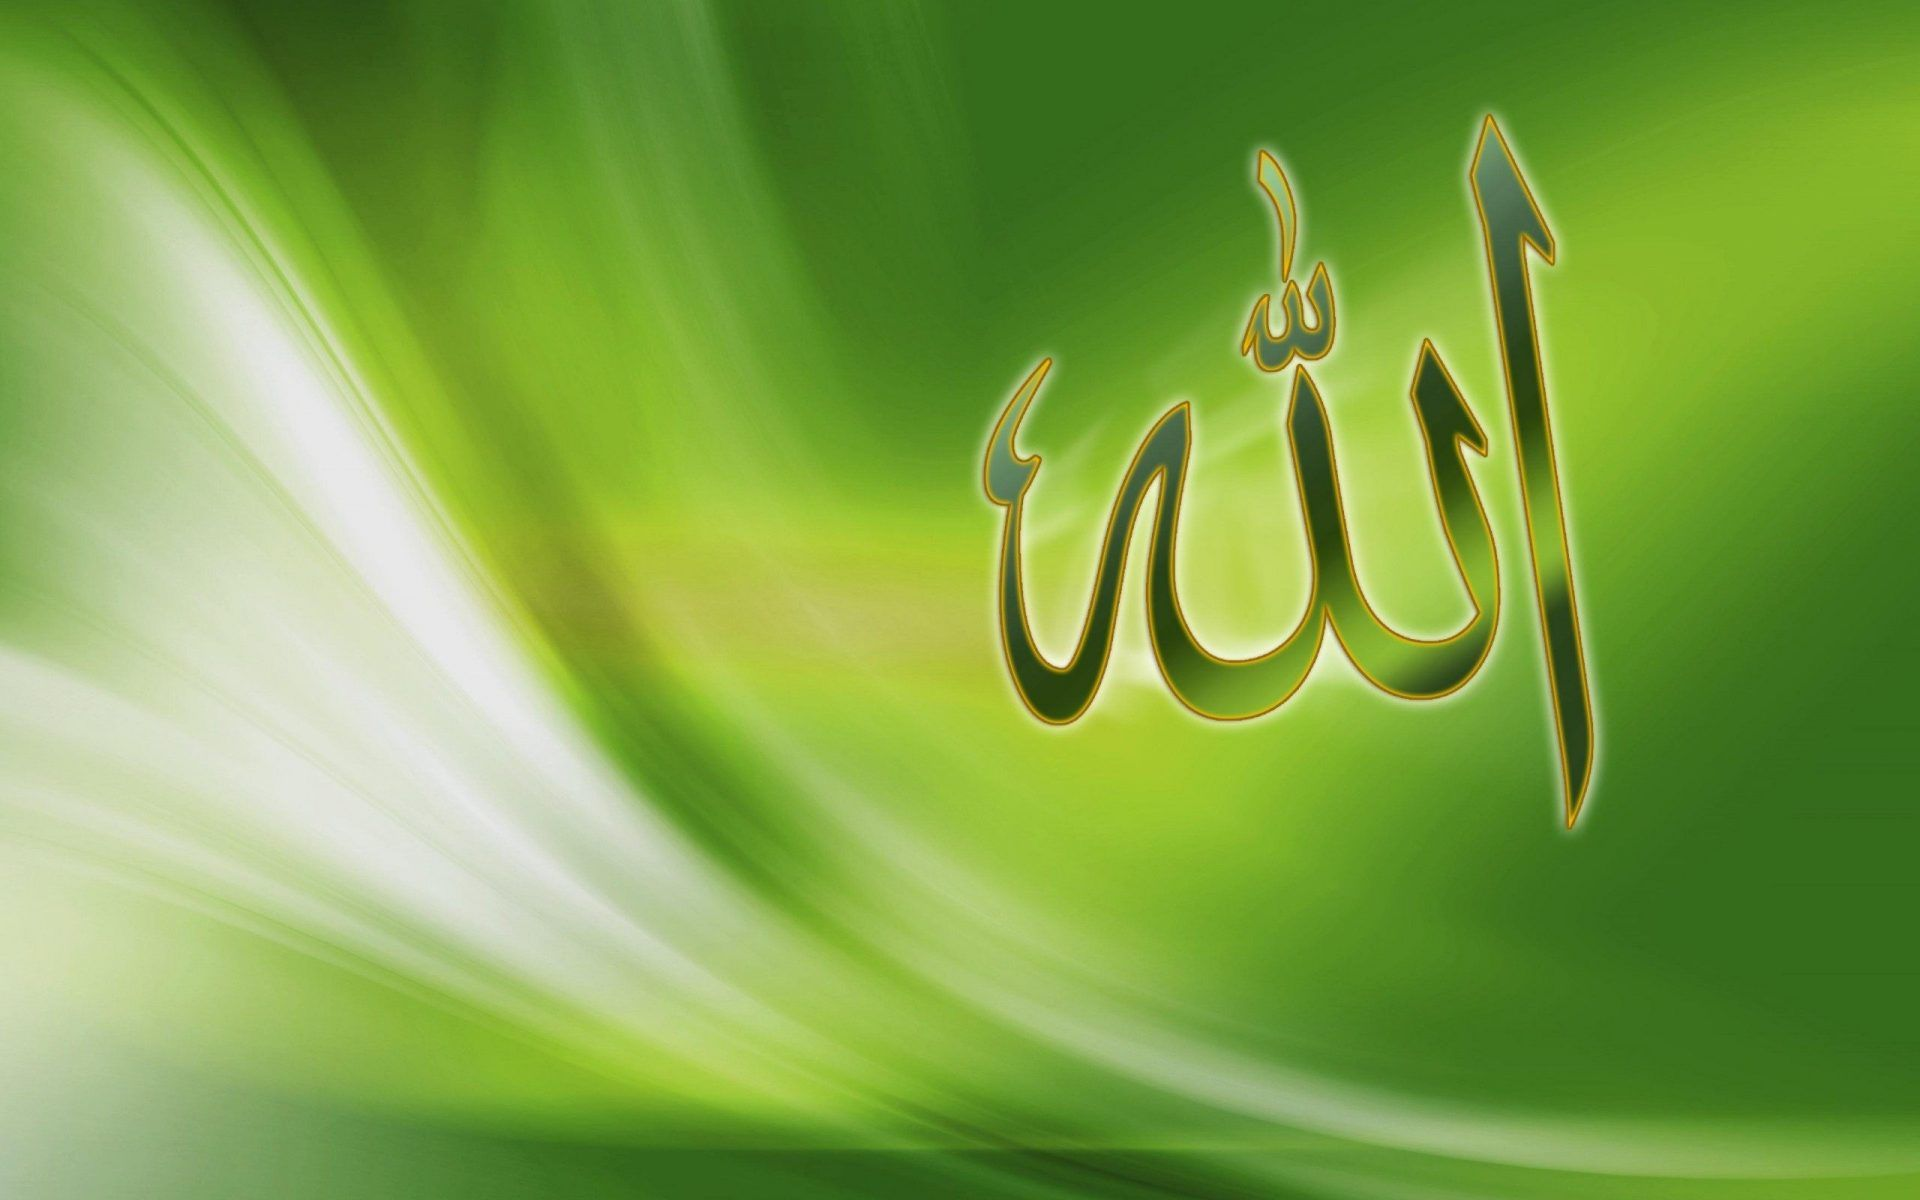 full HD ALLAH Name Wallpaper Desktop wallpaper download free for Widescreen, Mobile, Table ...